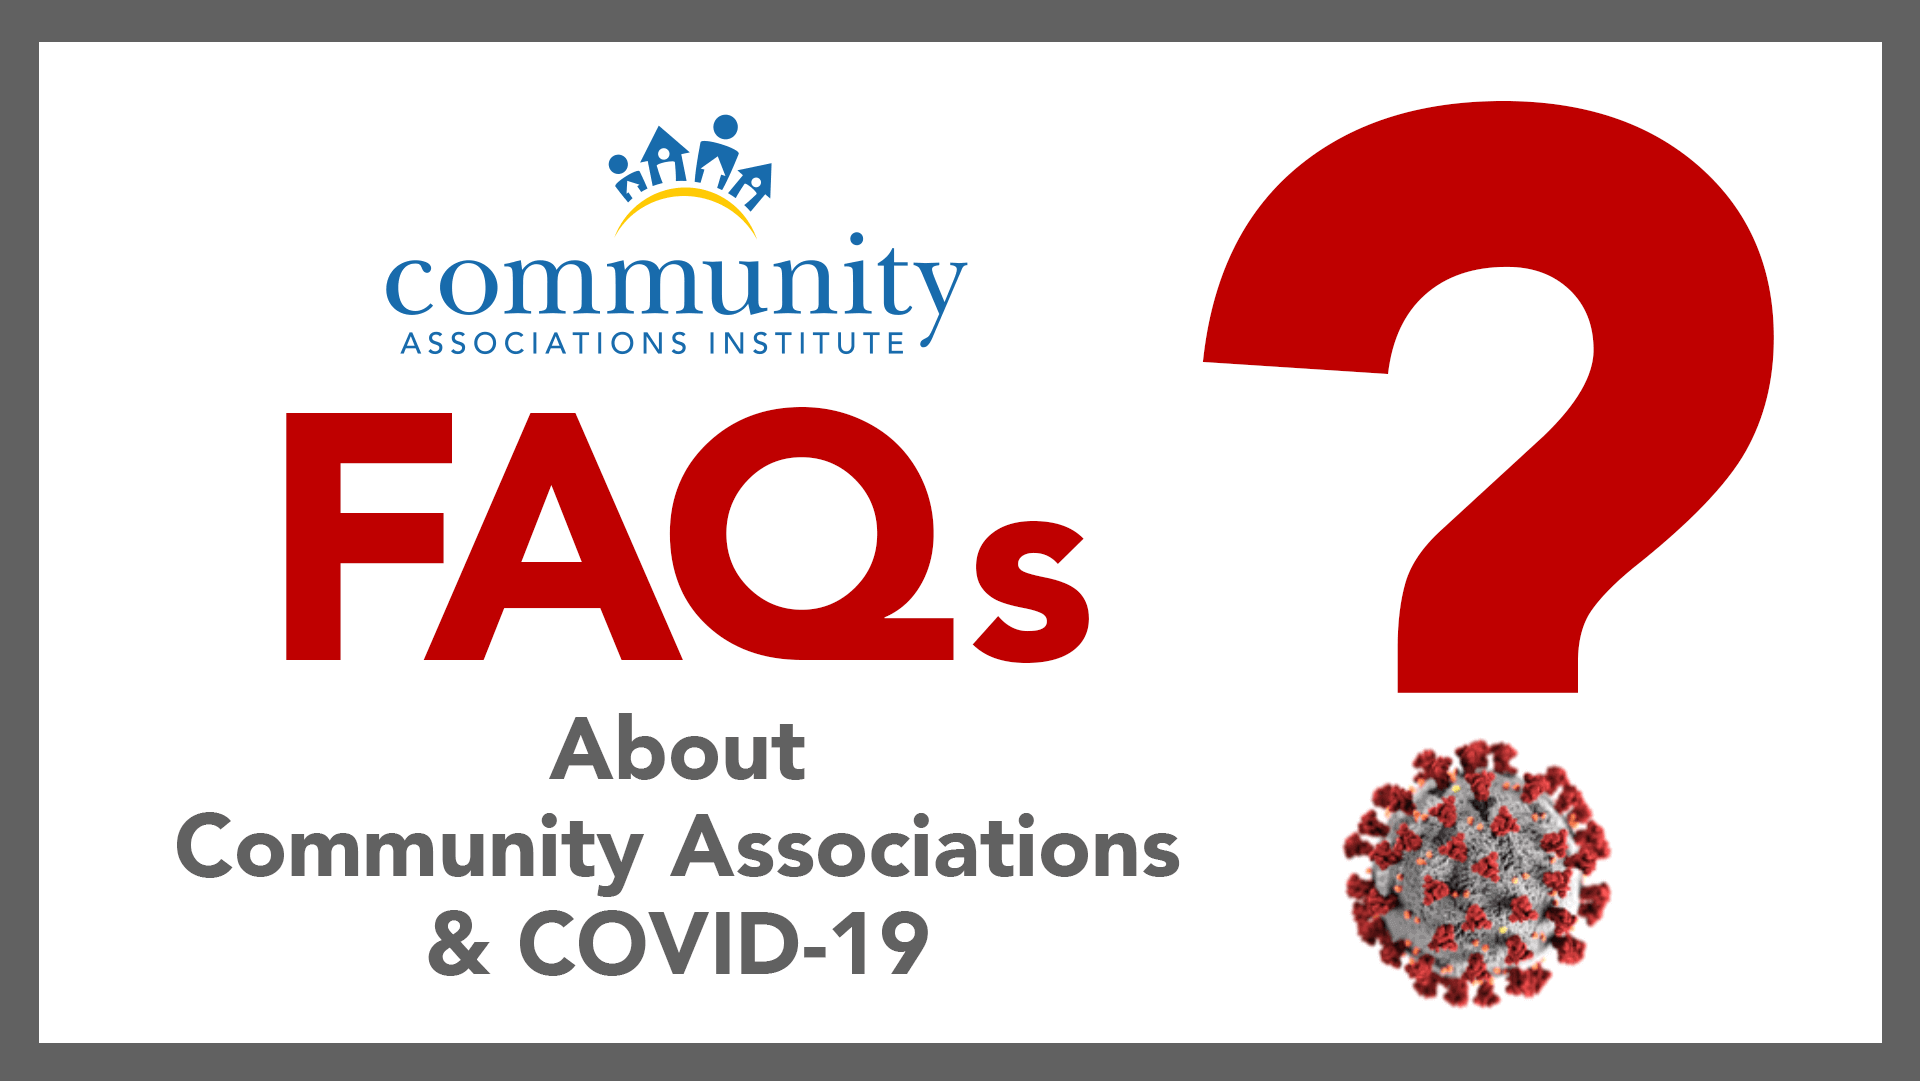 FAQs About Community Associations & COVID-19 - Click for CAI Q&A Article